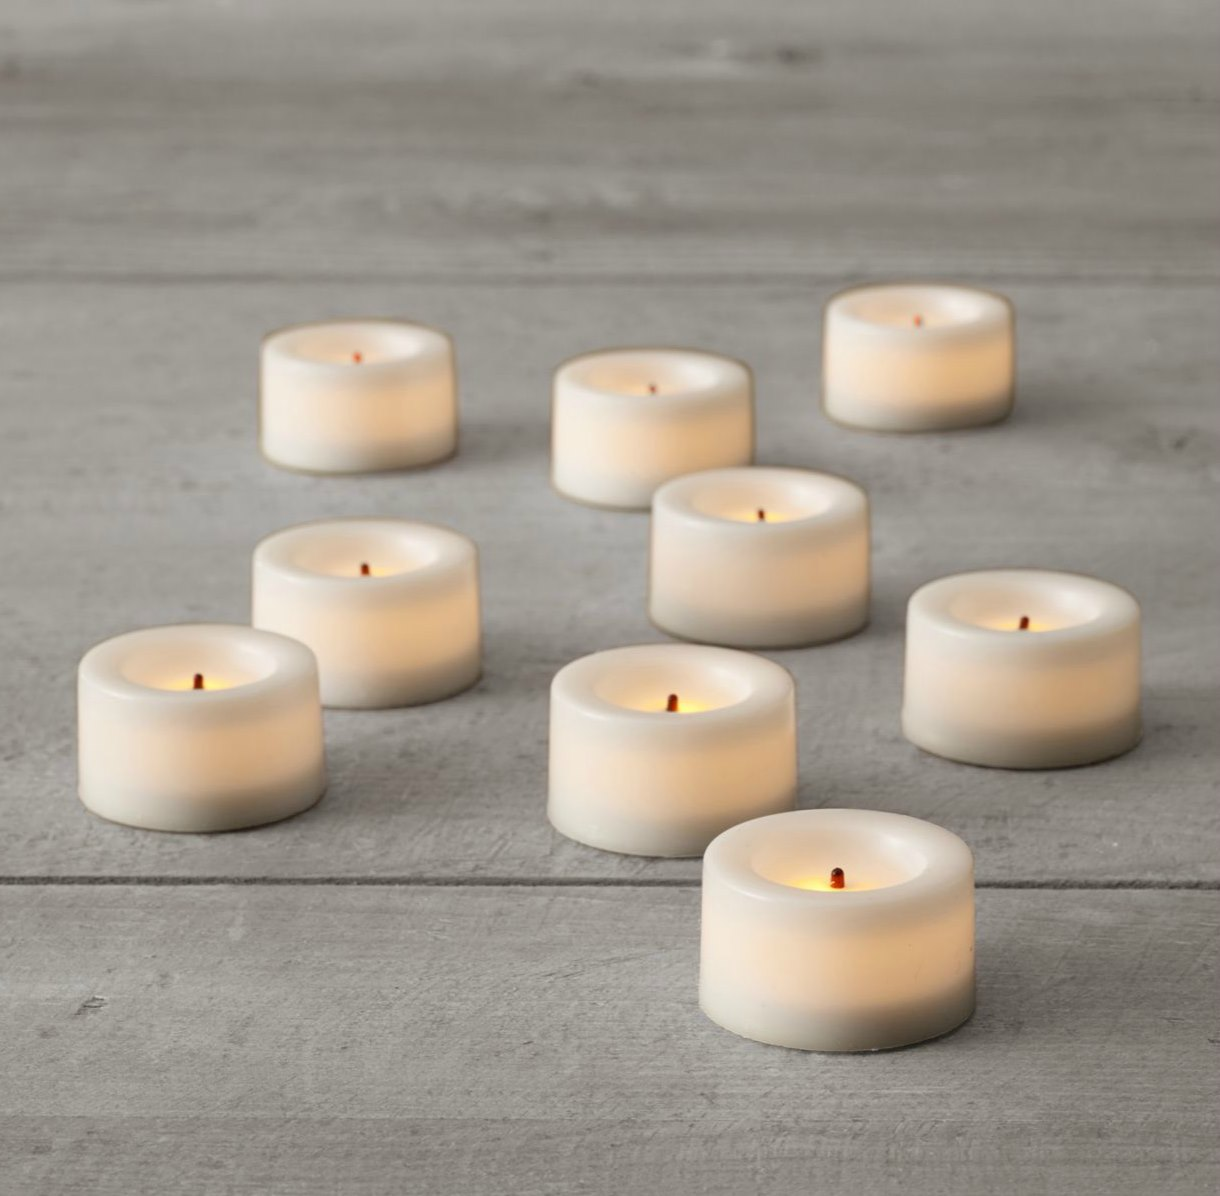 Flameless tea lights from Restoration Hardware